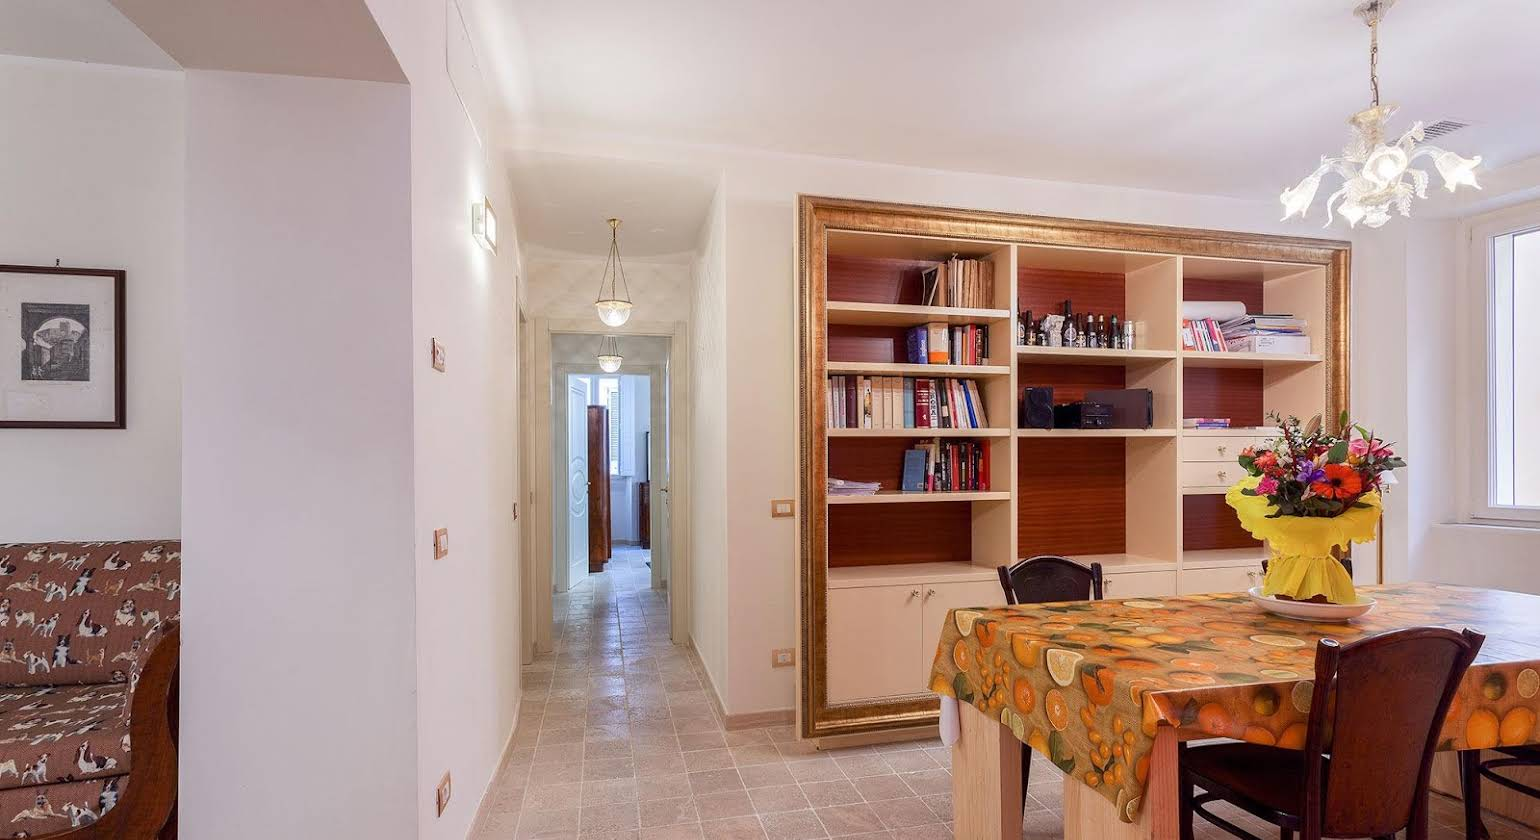 Rome as you feel - Spanish Steps Apartments